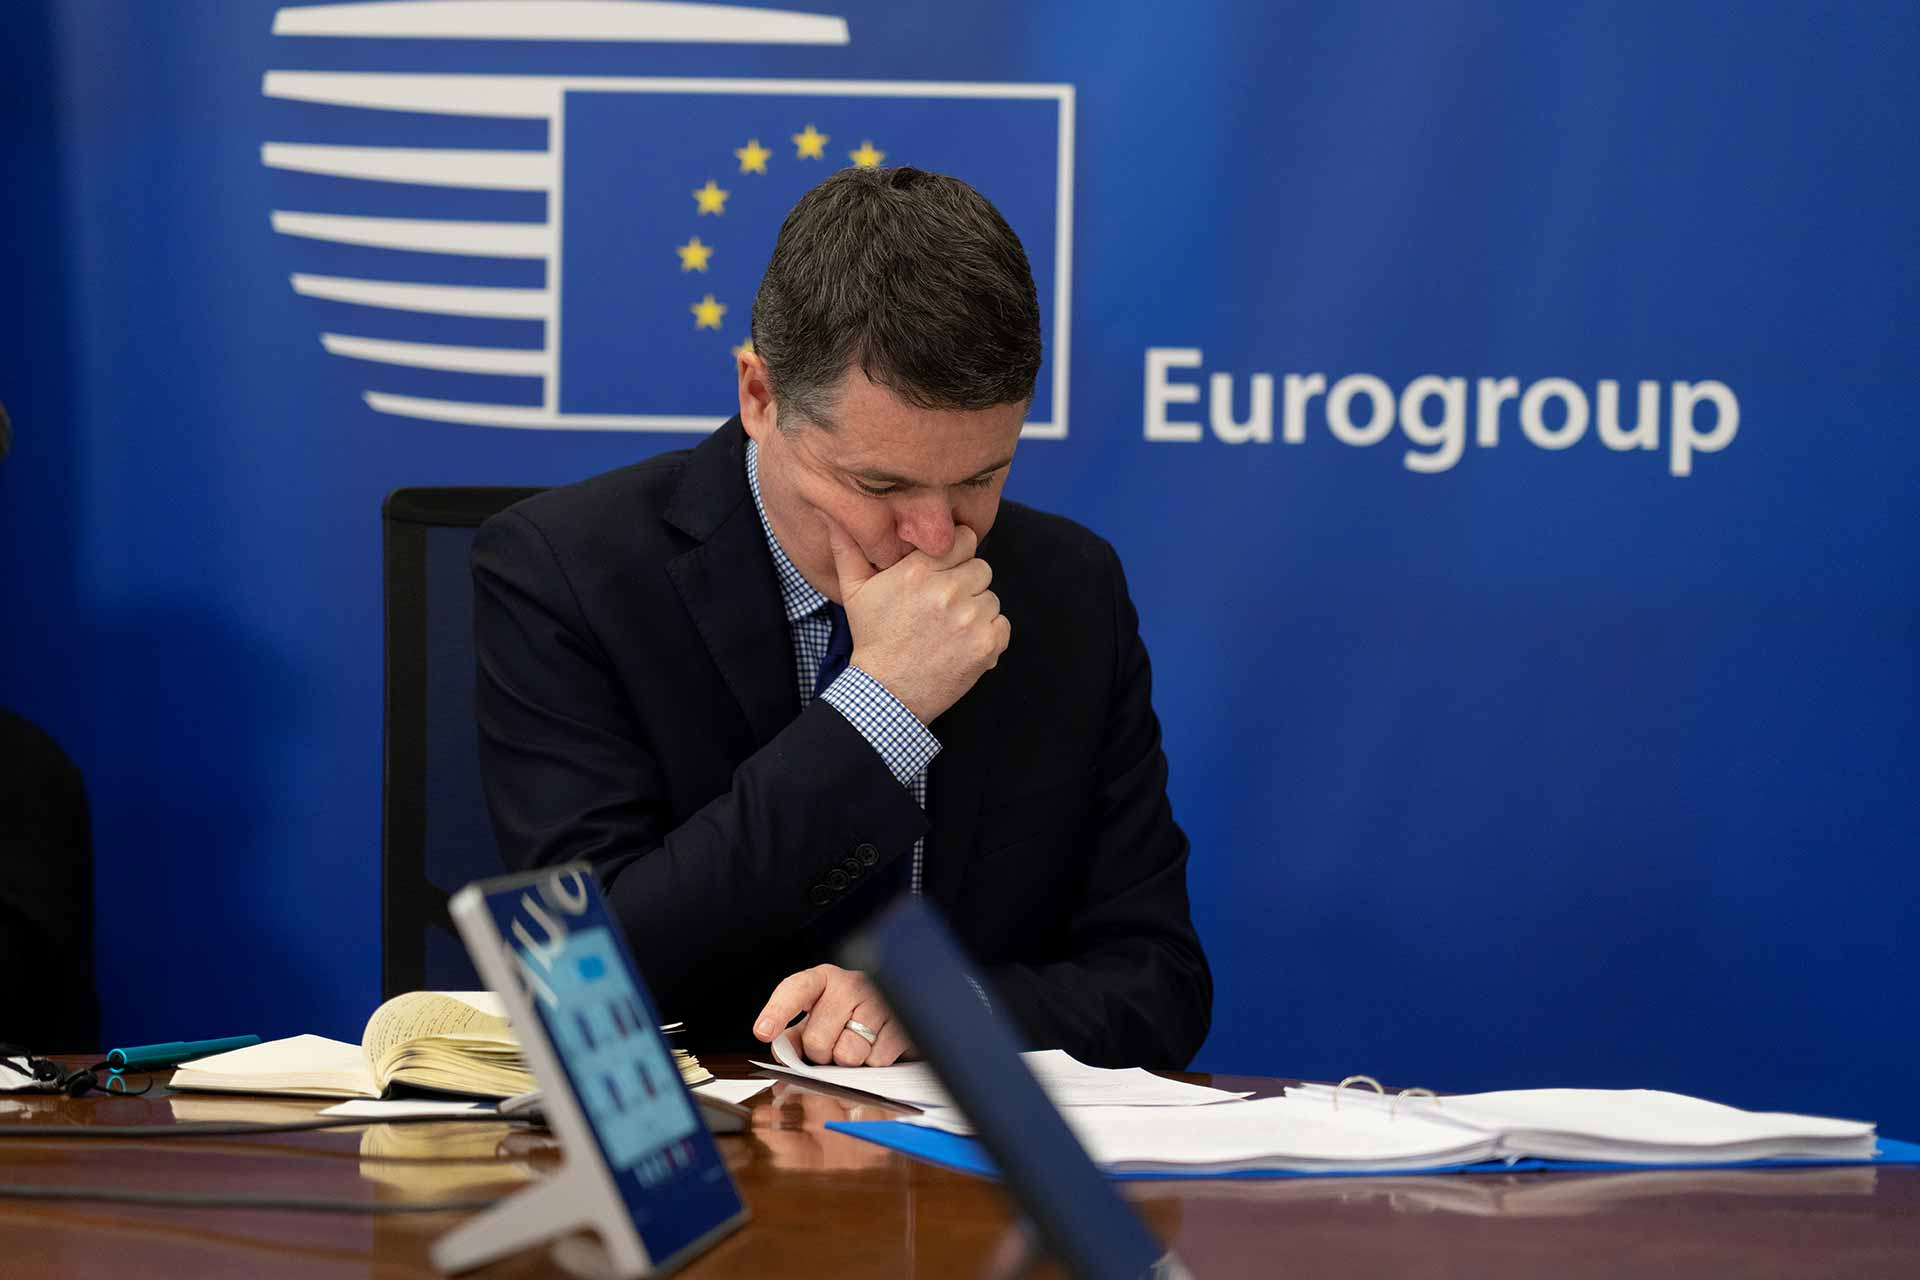 Paschal Donohoe Eurogroup President and Finance Minister of Ireland